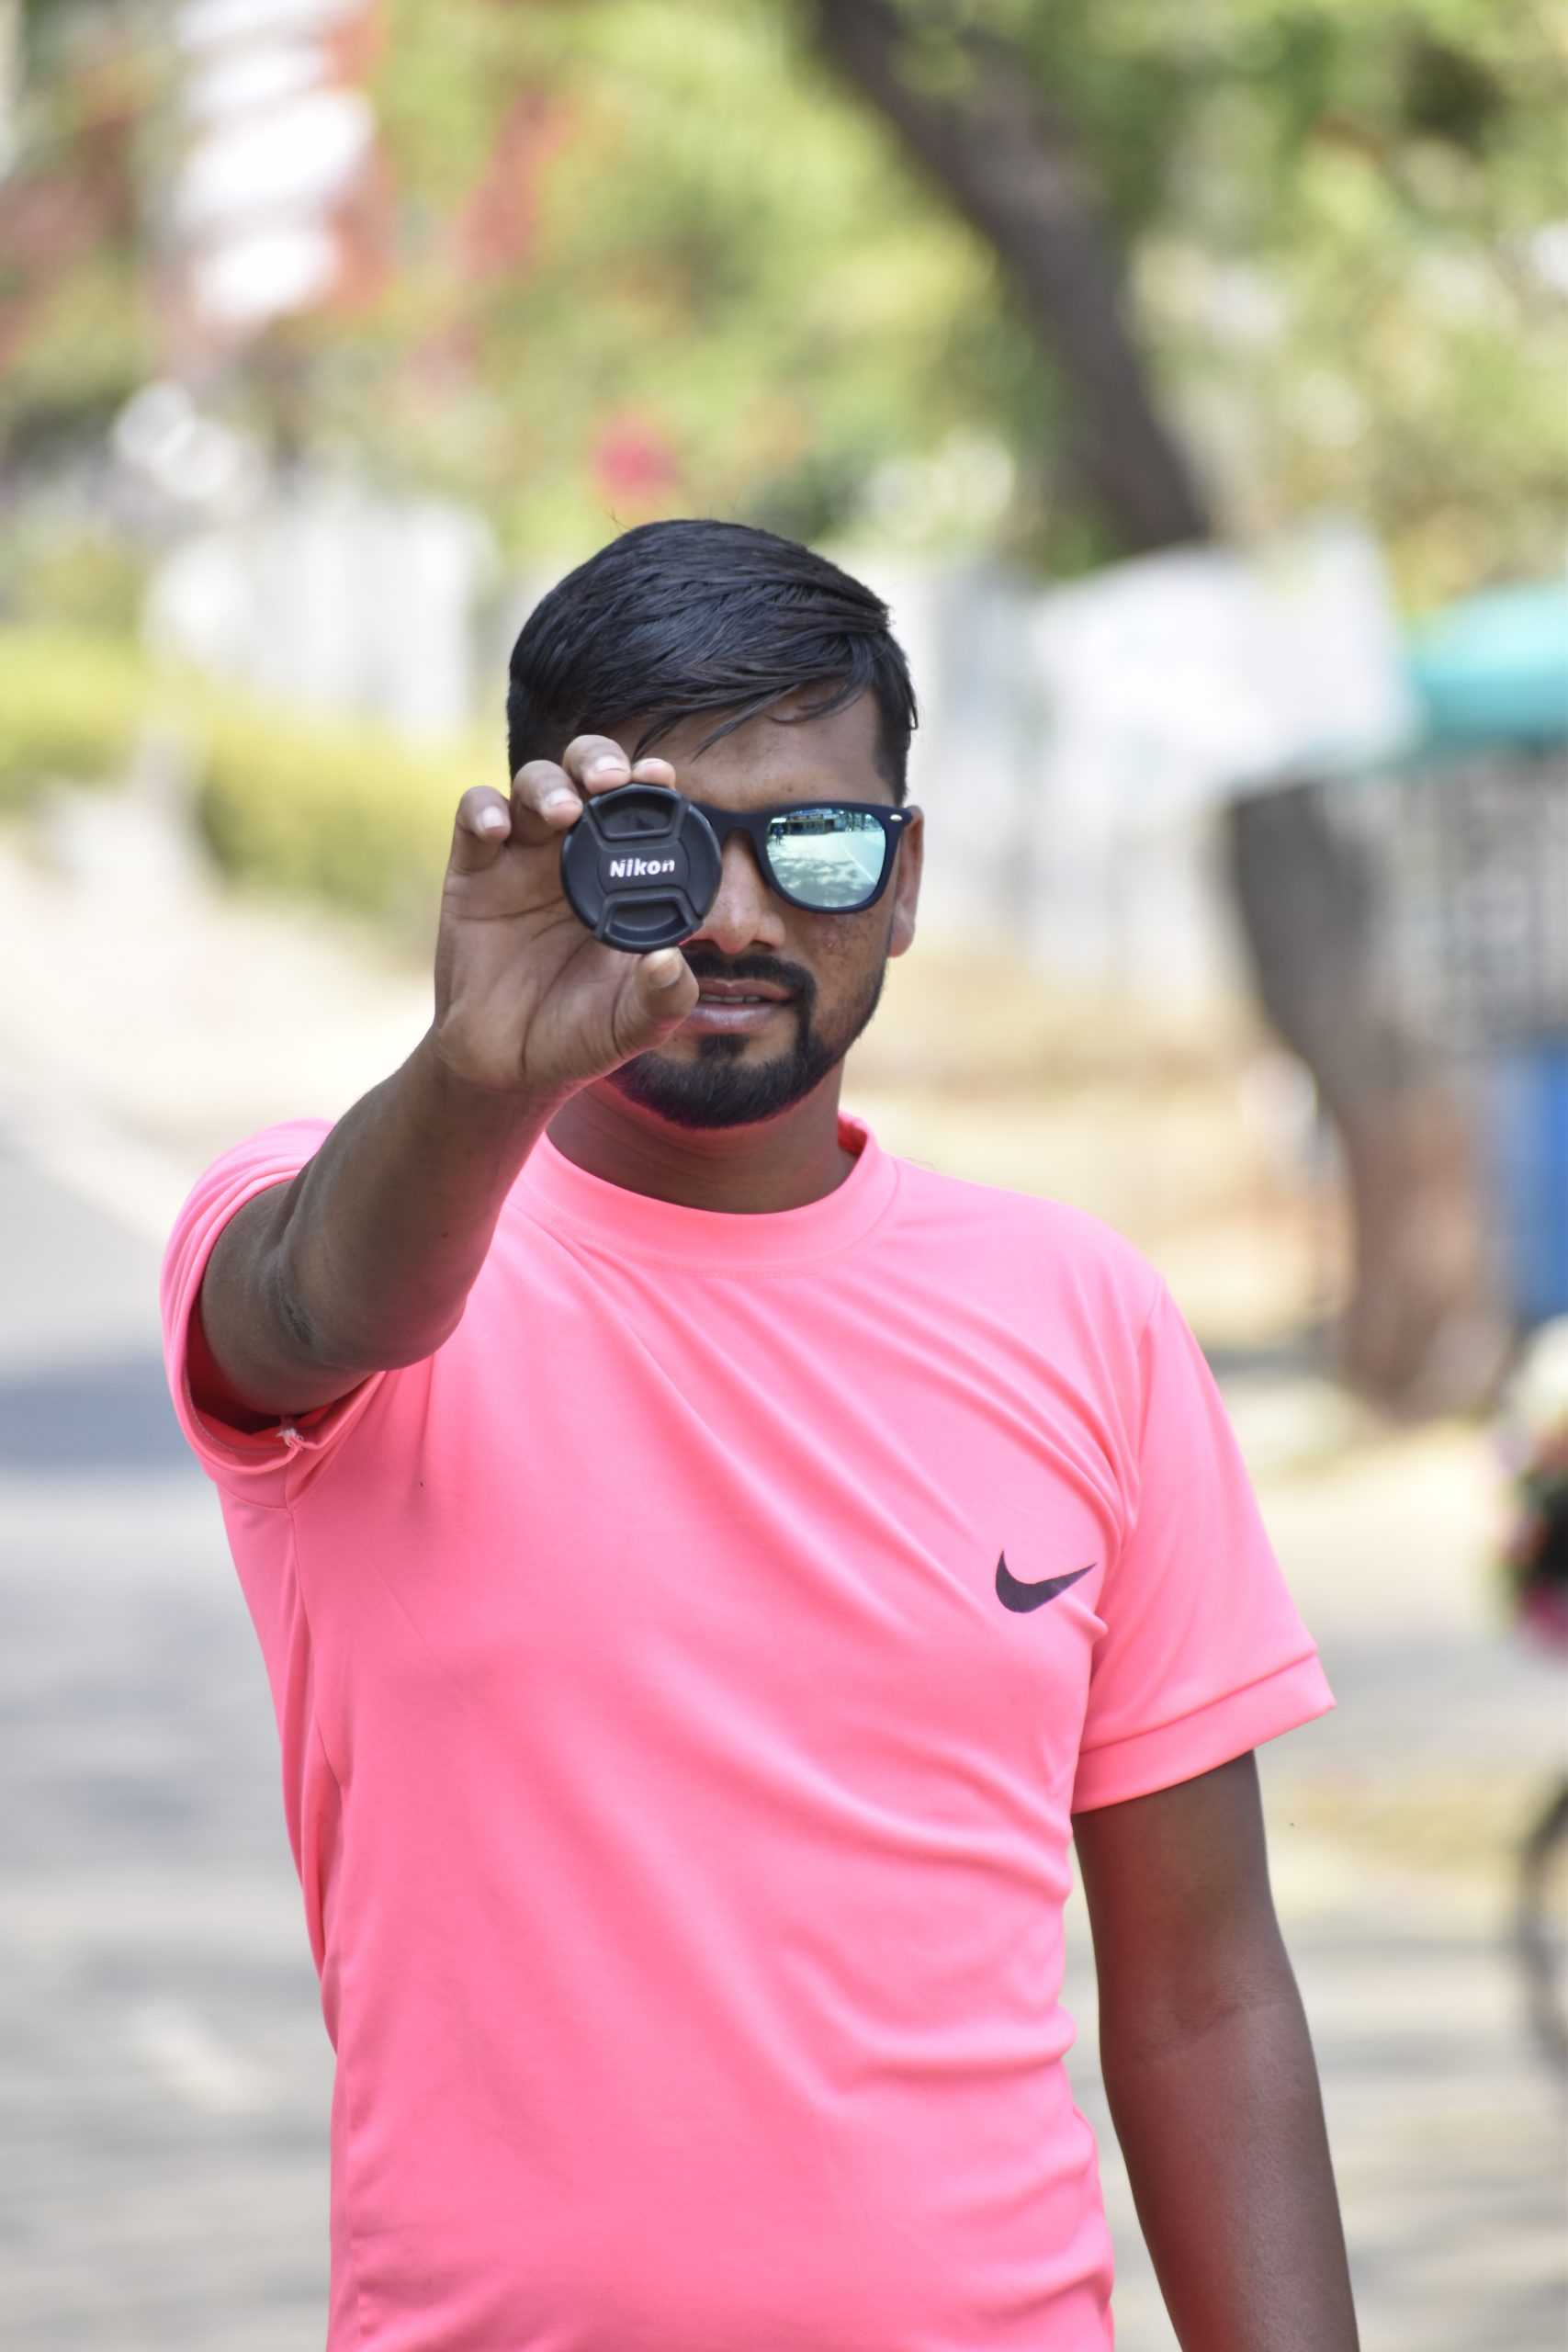 A boy showing camera lens cap